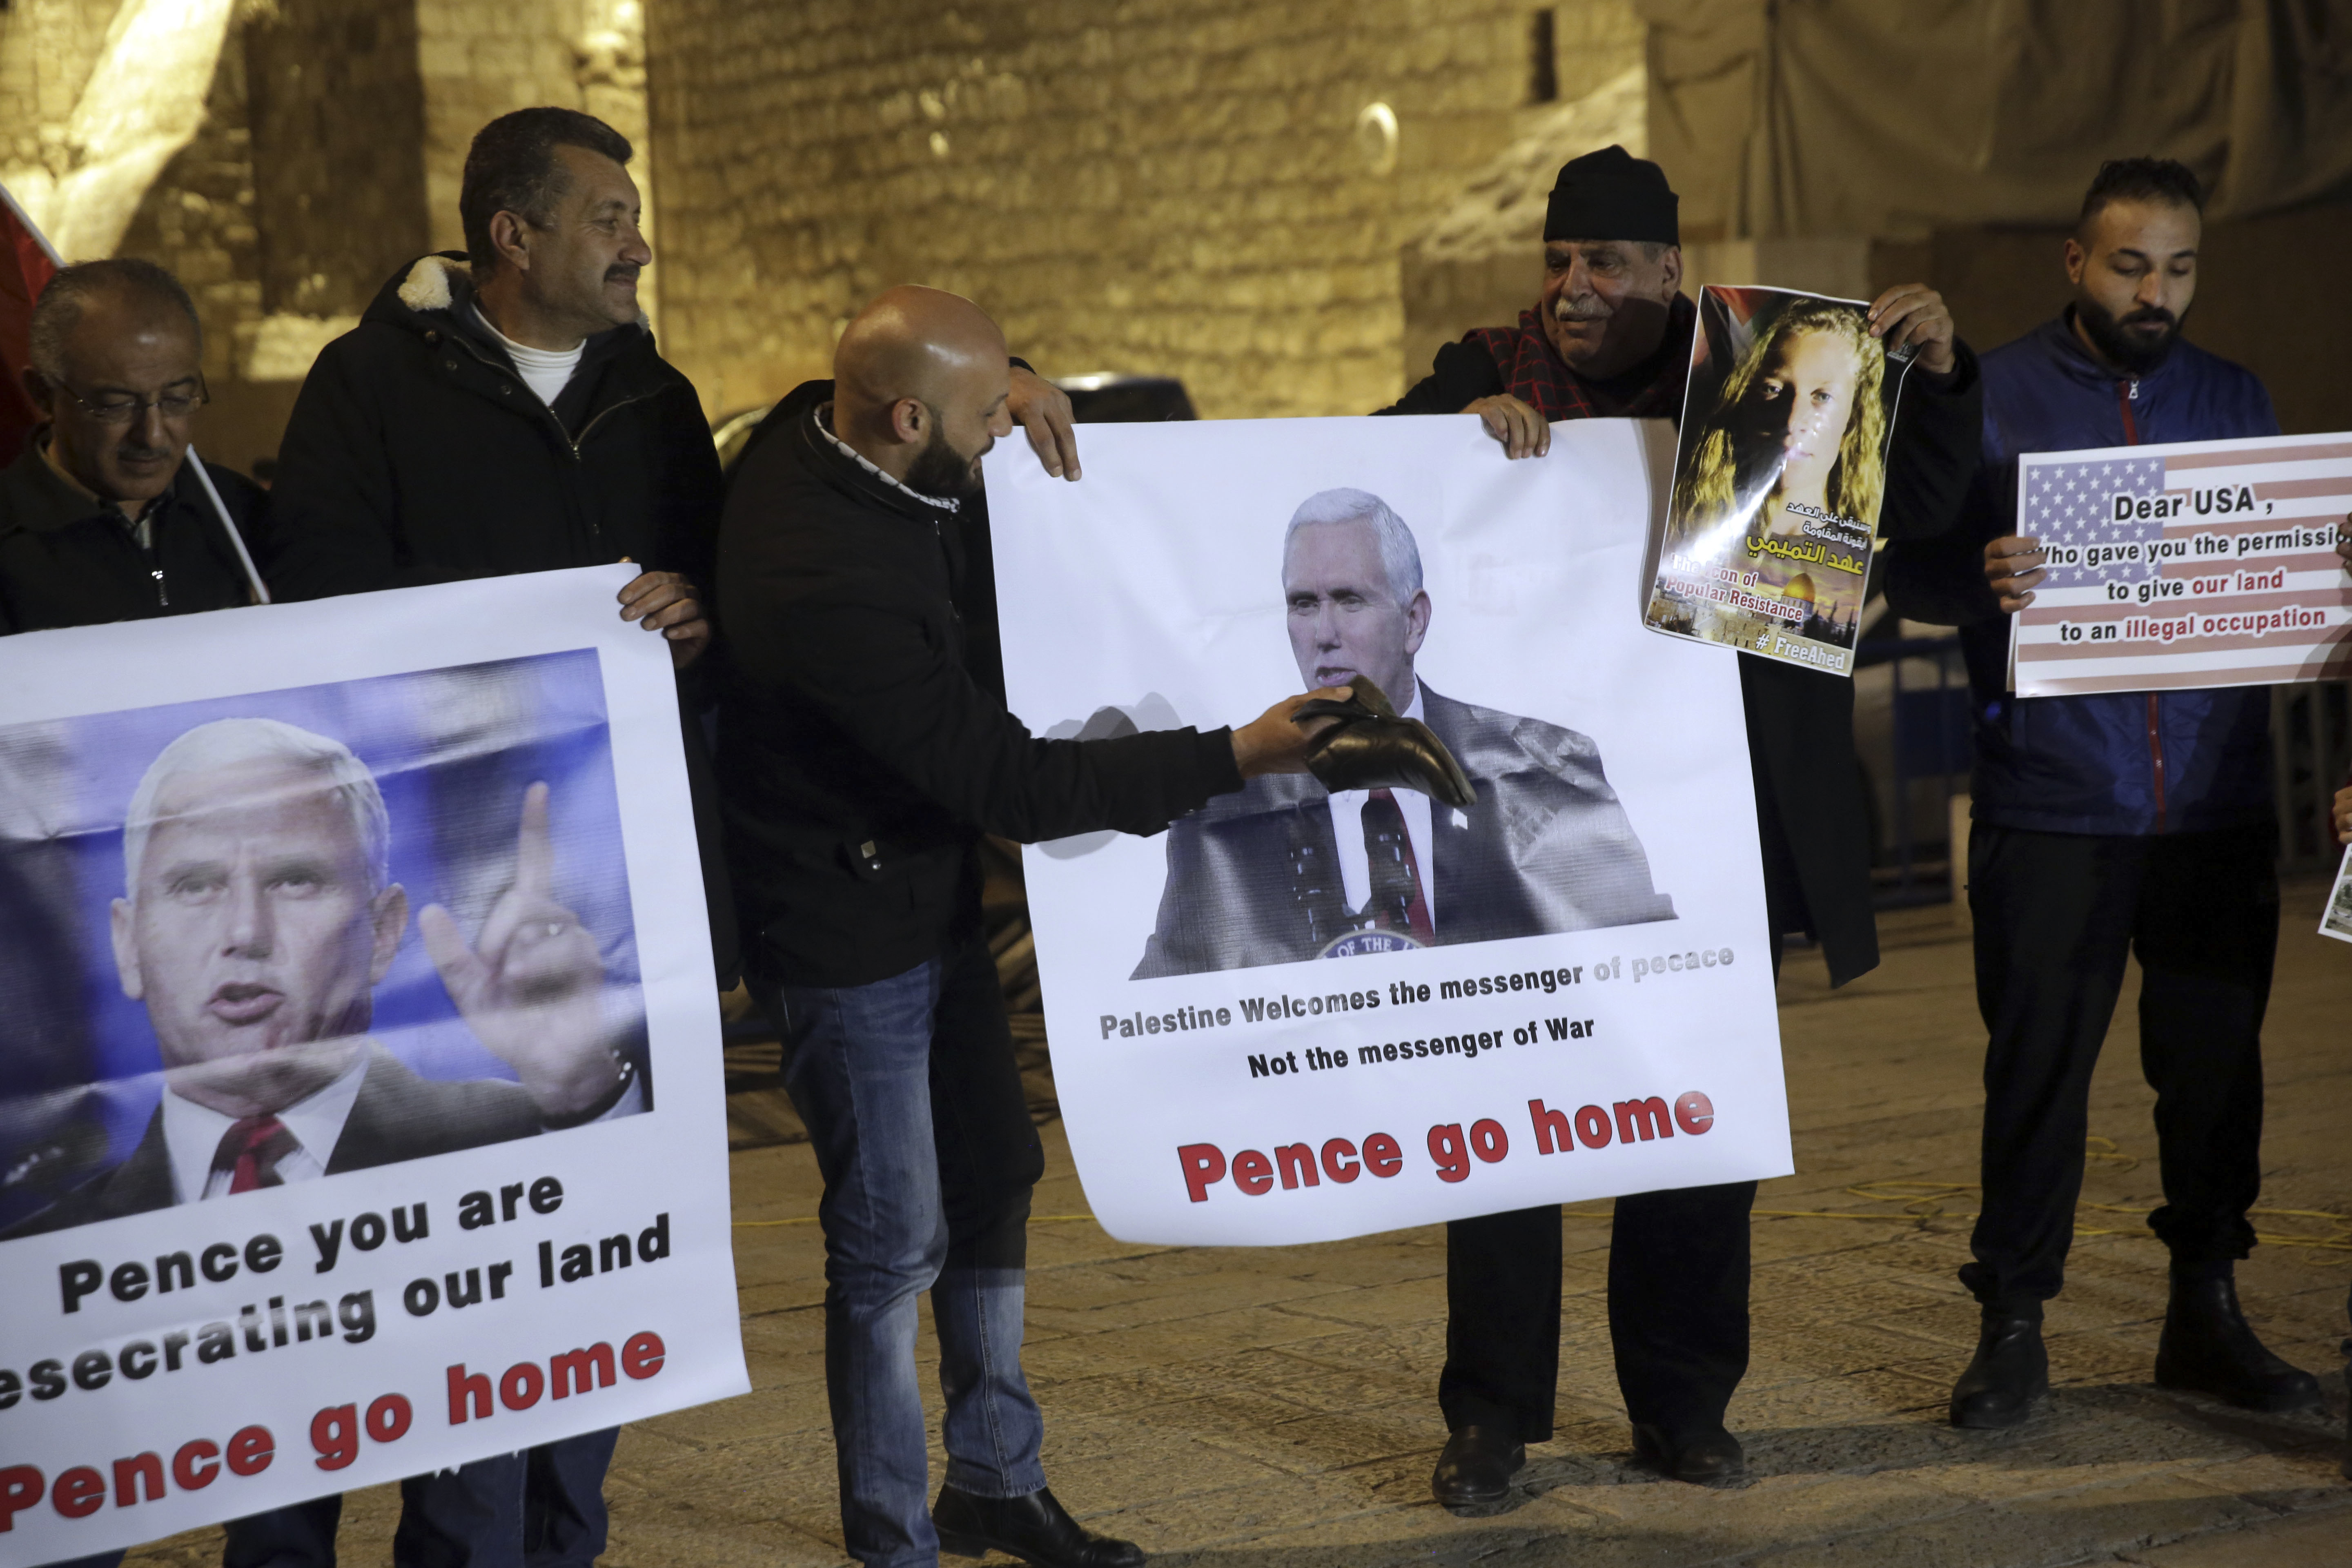 Palestinians hold posters of U.S. President Mike Pence as they protest his visit to Israel in Bethlehem, West Bank, Sunday, Jan. 21, 2018.